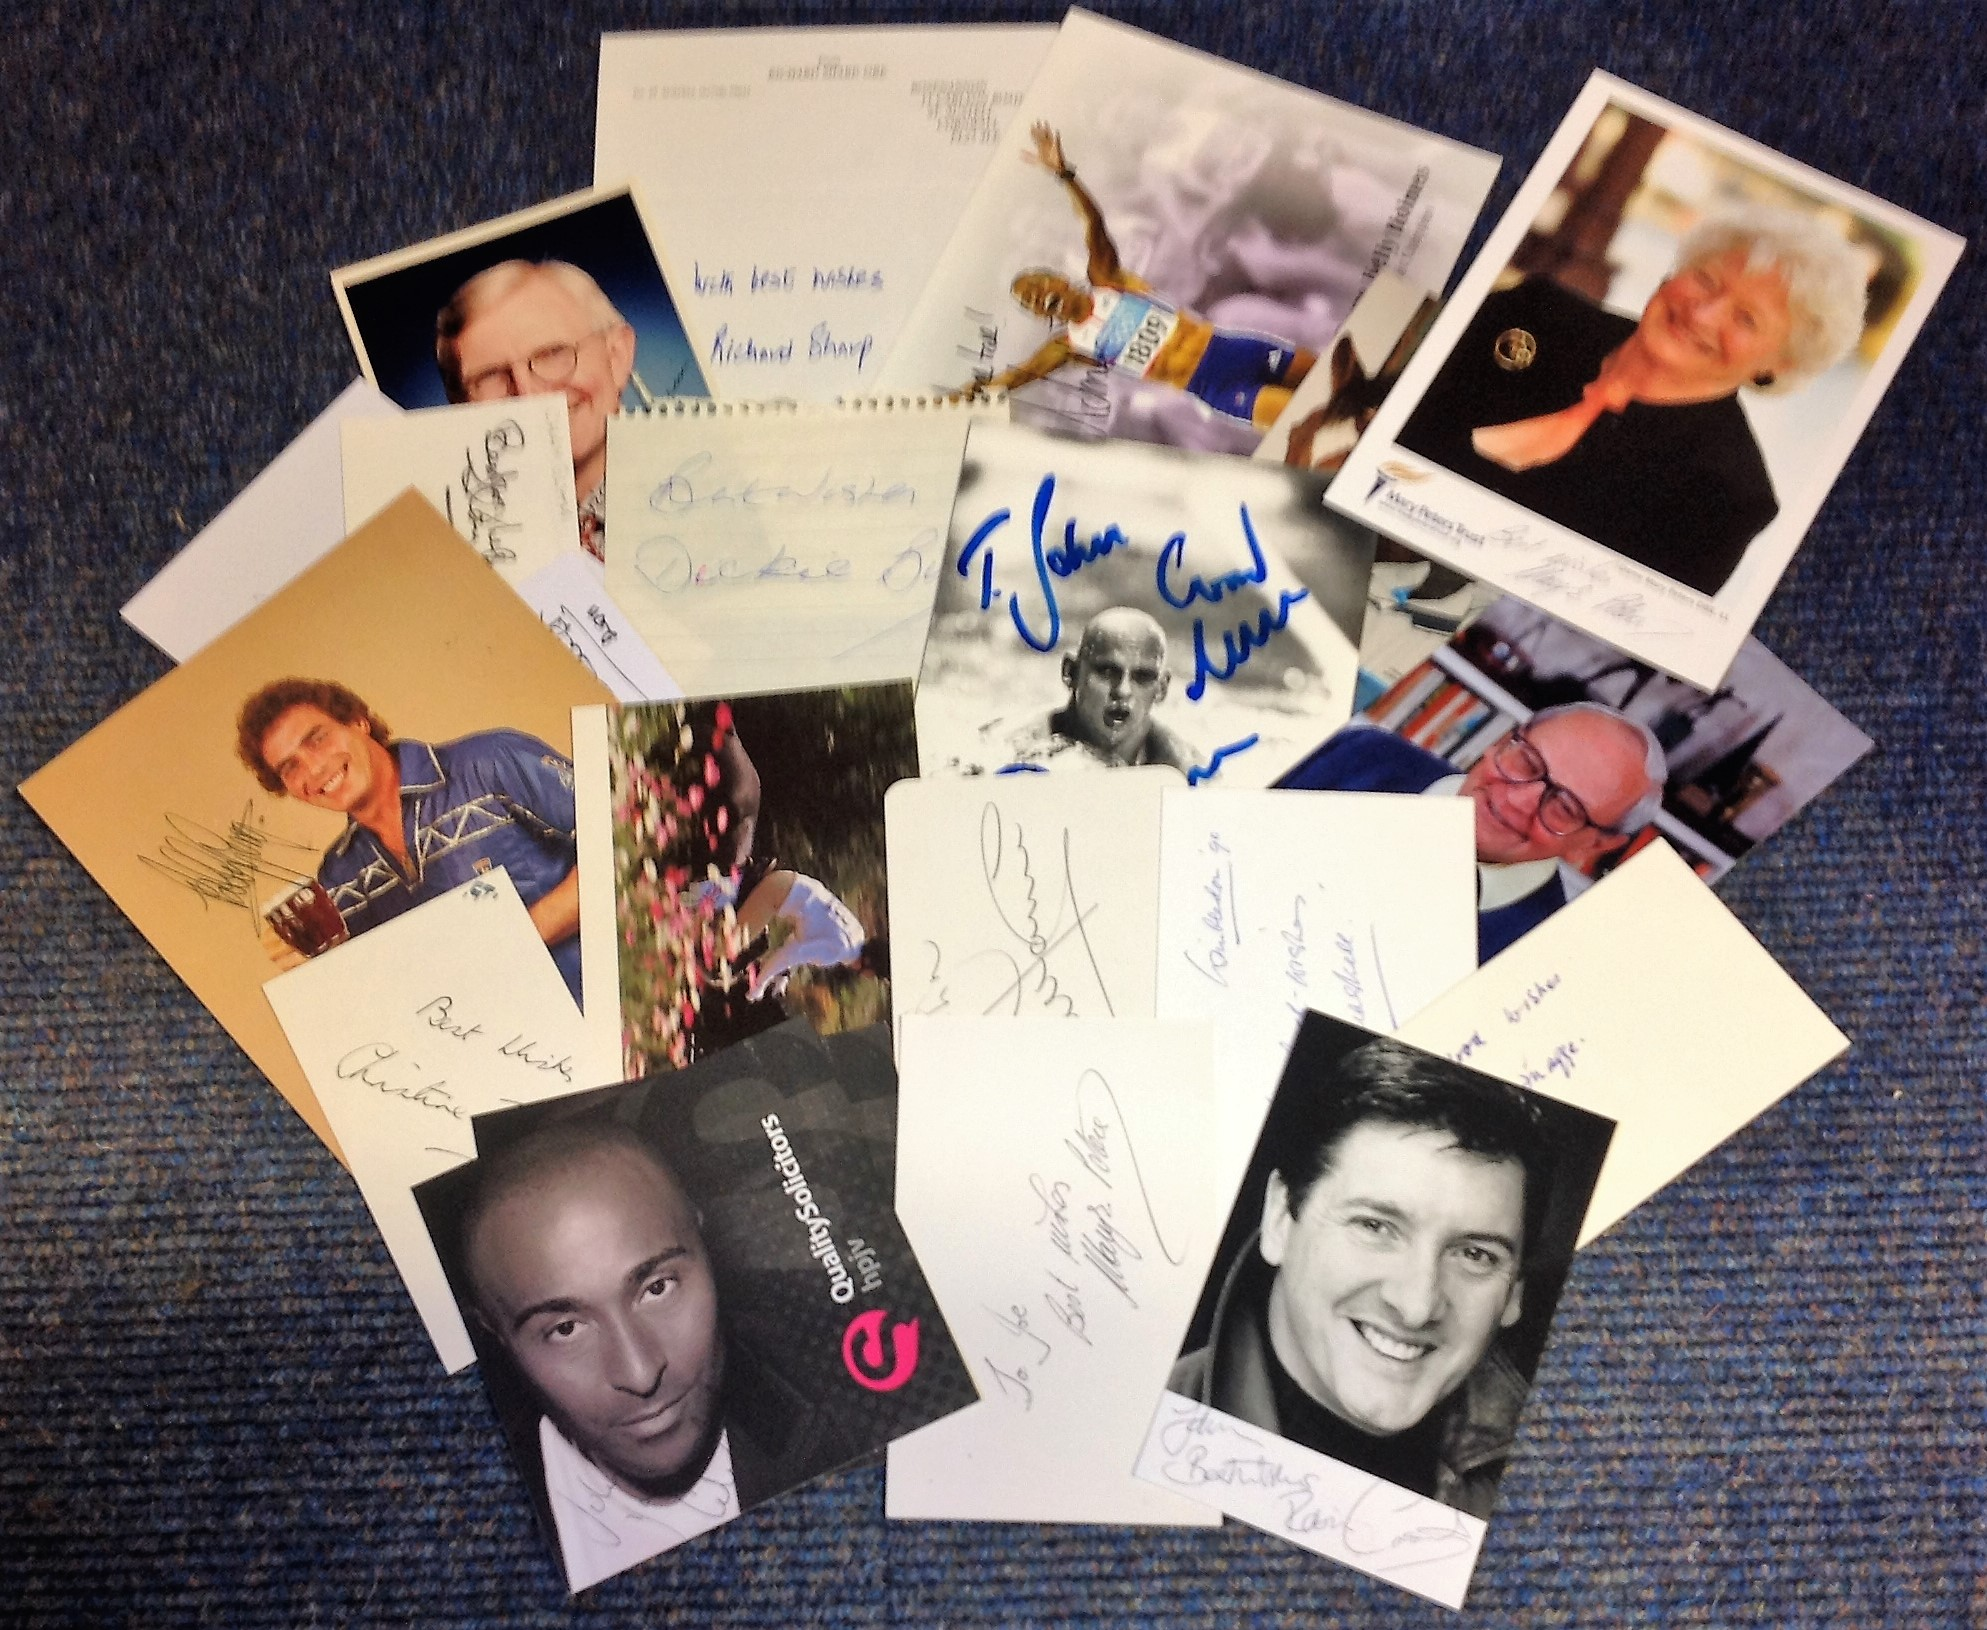 Lot 16 - Sport collection. 21 items, assortment of photos and signature pieces. Some of names included are